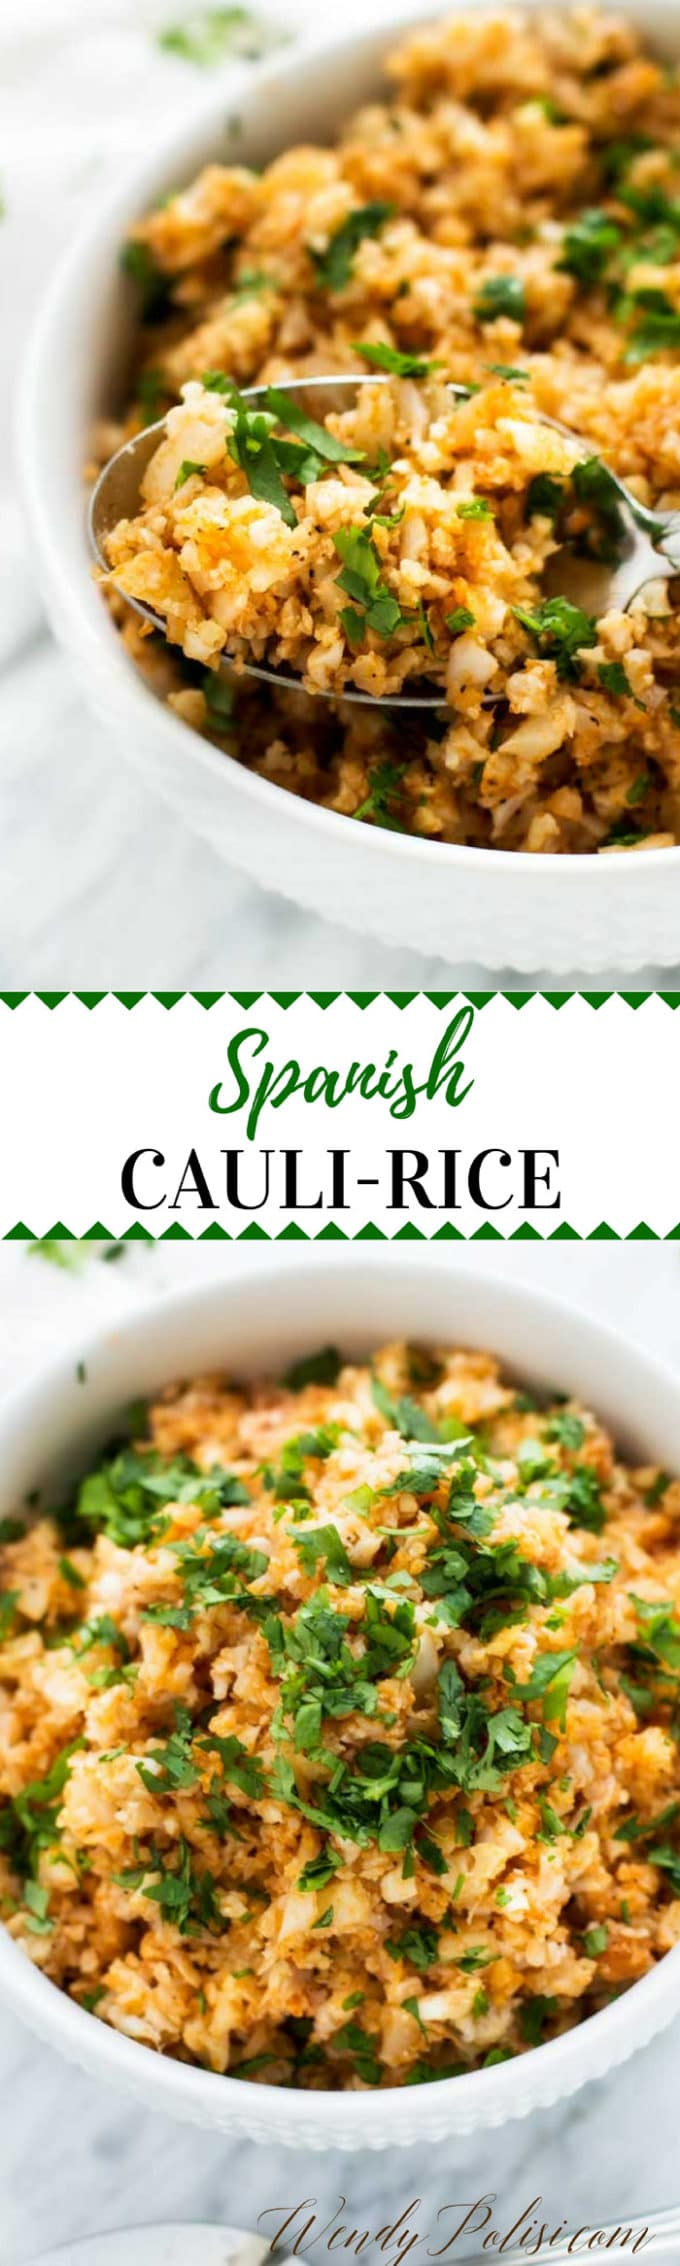 This Spanish Cauliflower Rice is a delicious low-carb side dish that you can enjoy without guilt! Naturally Gluten Free and Keto Friendly.